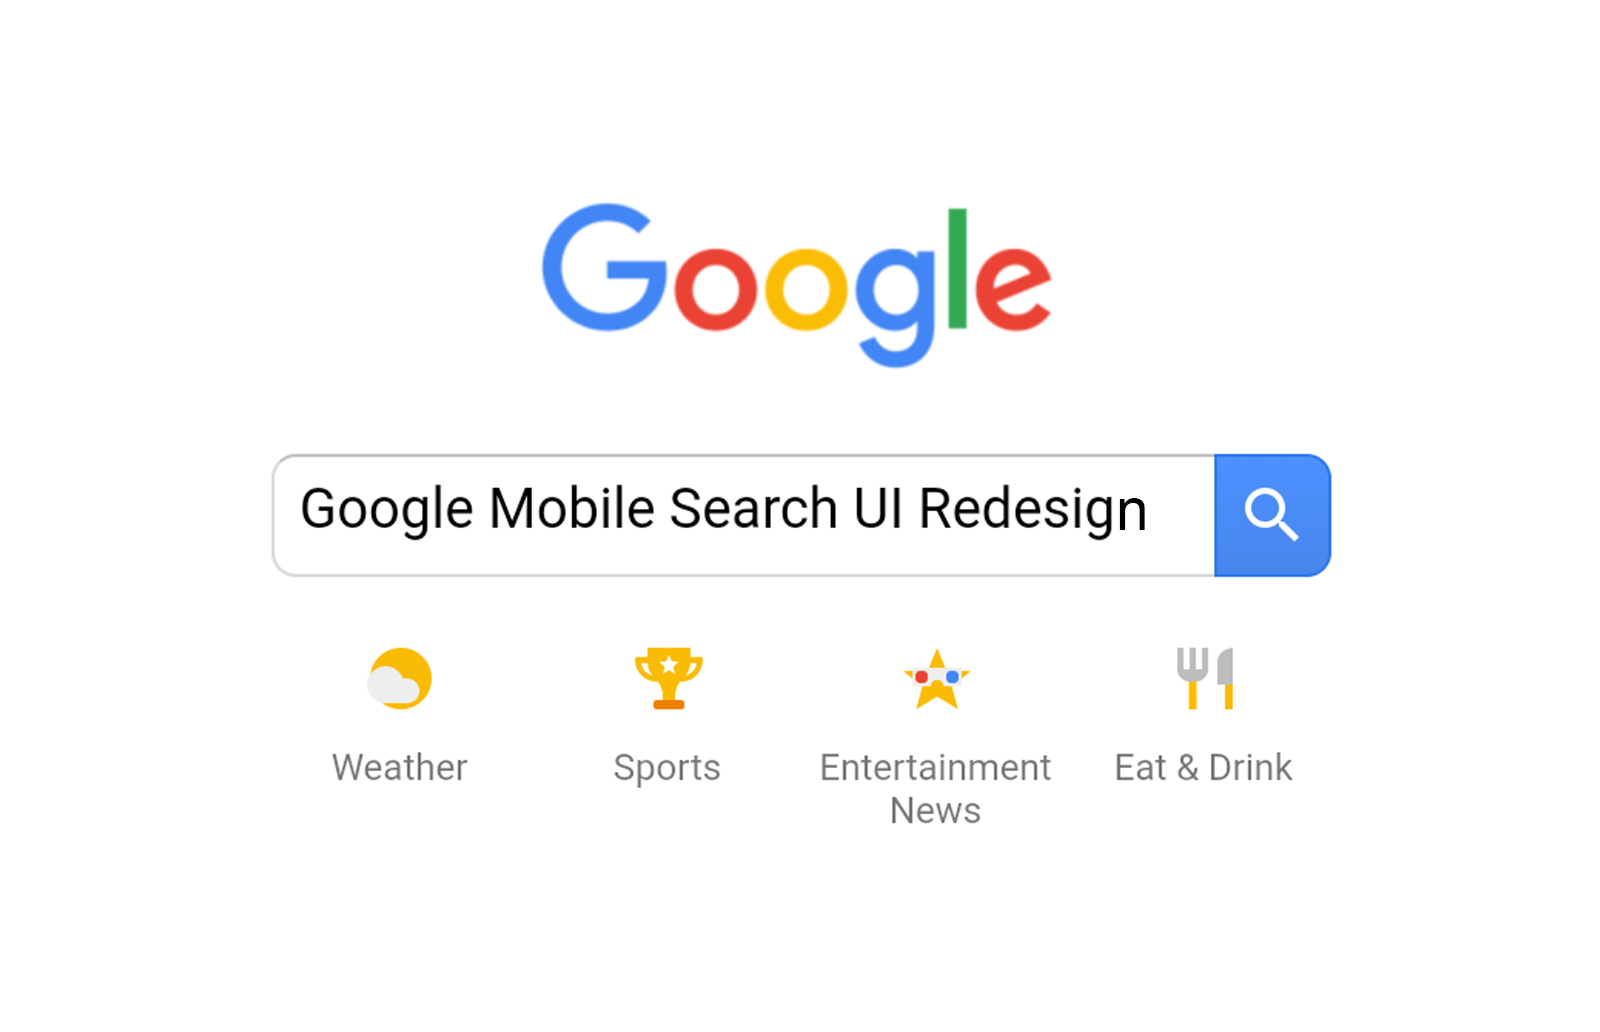 Google Mobile Search UI Redesign